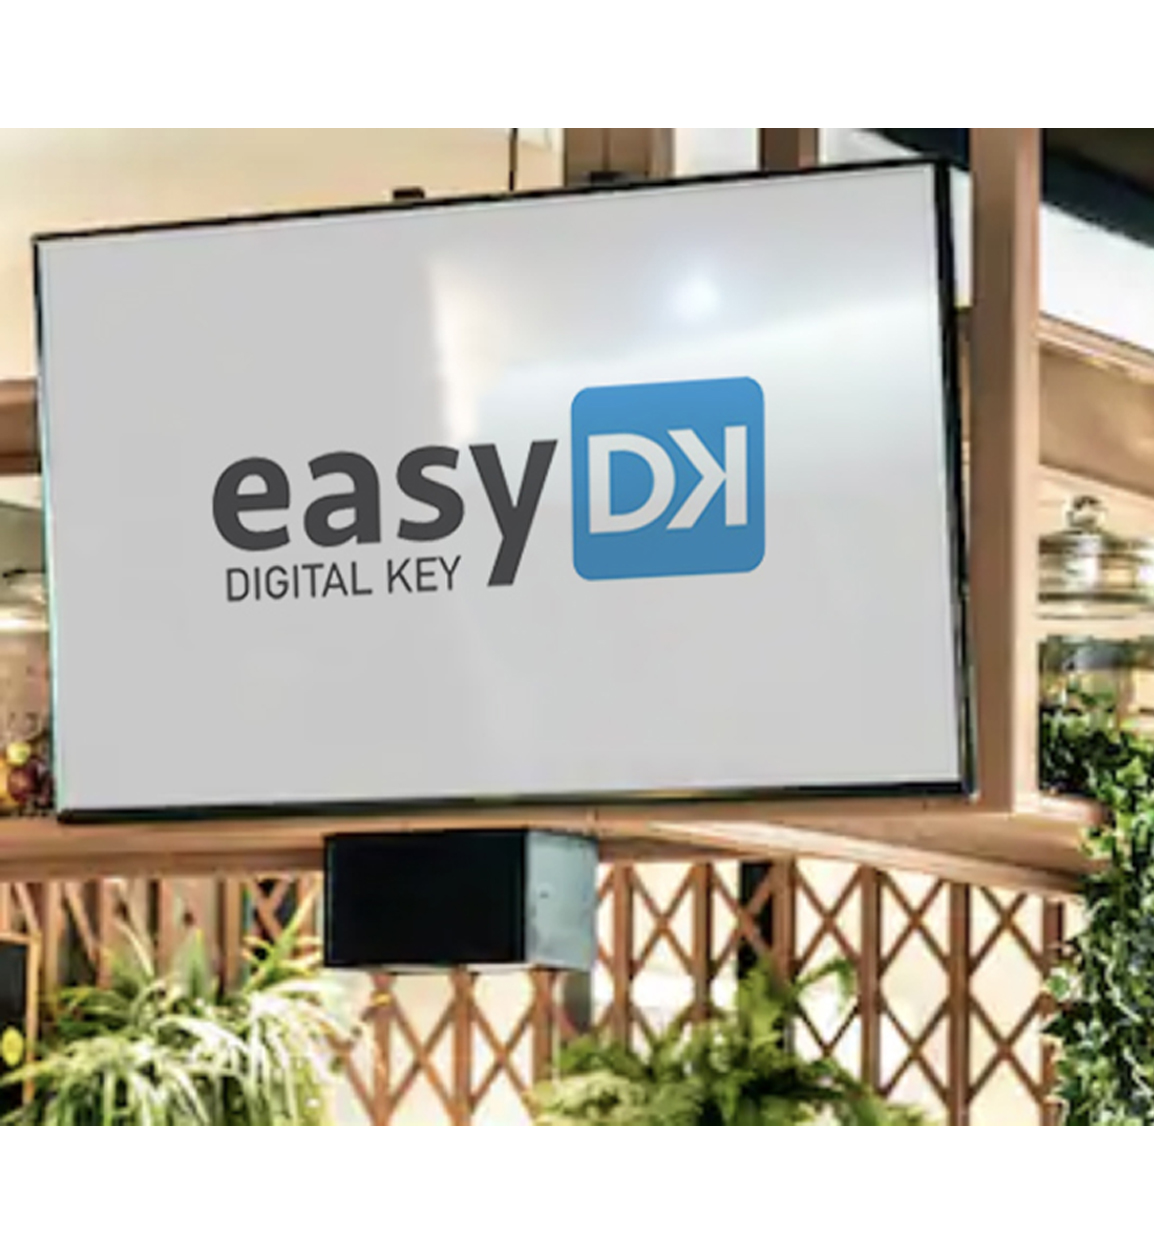 Illustration of dynamic signage solution connected with EasyDK player